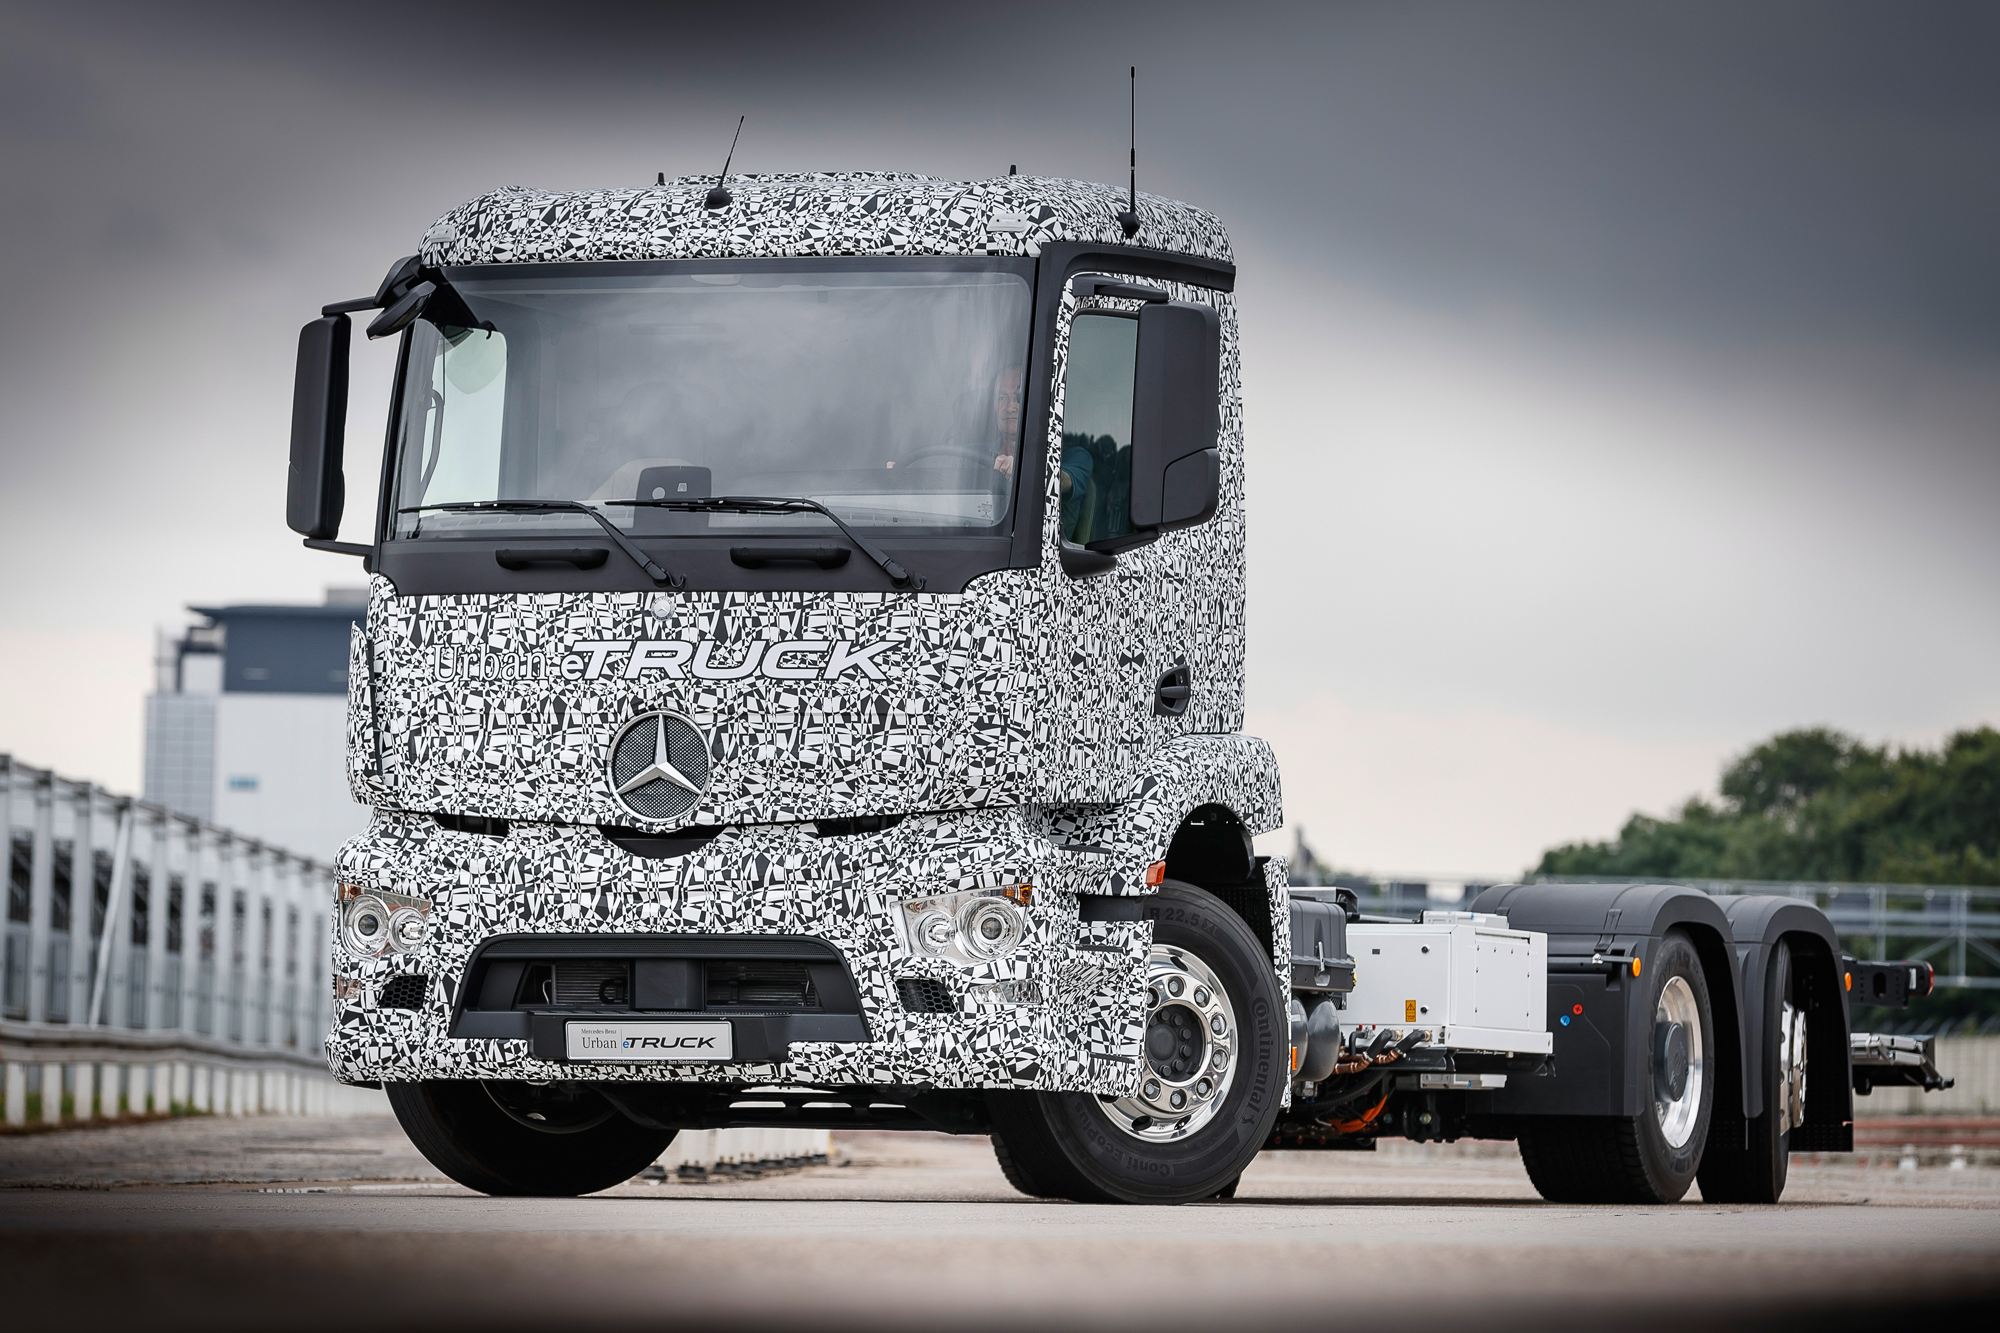 The prototype of the Urban eTruck electric truck from Mercedes-Benz 9